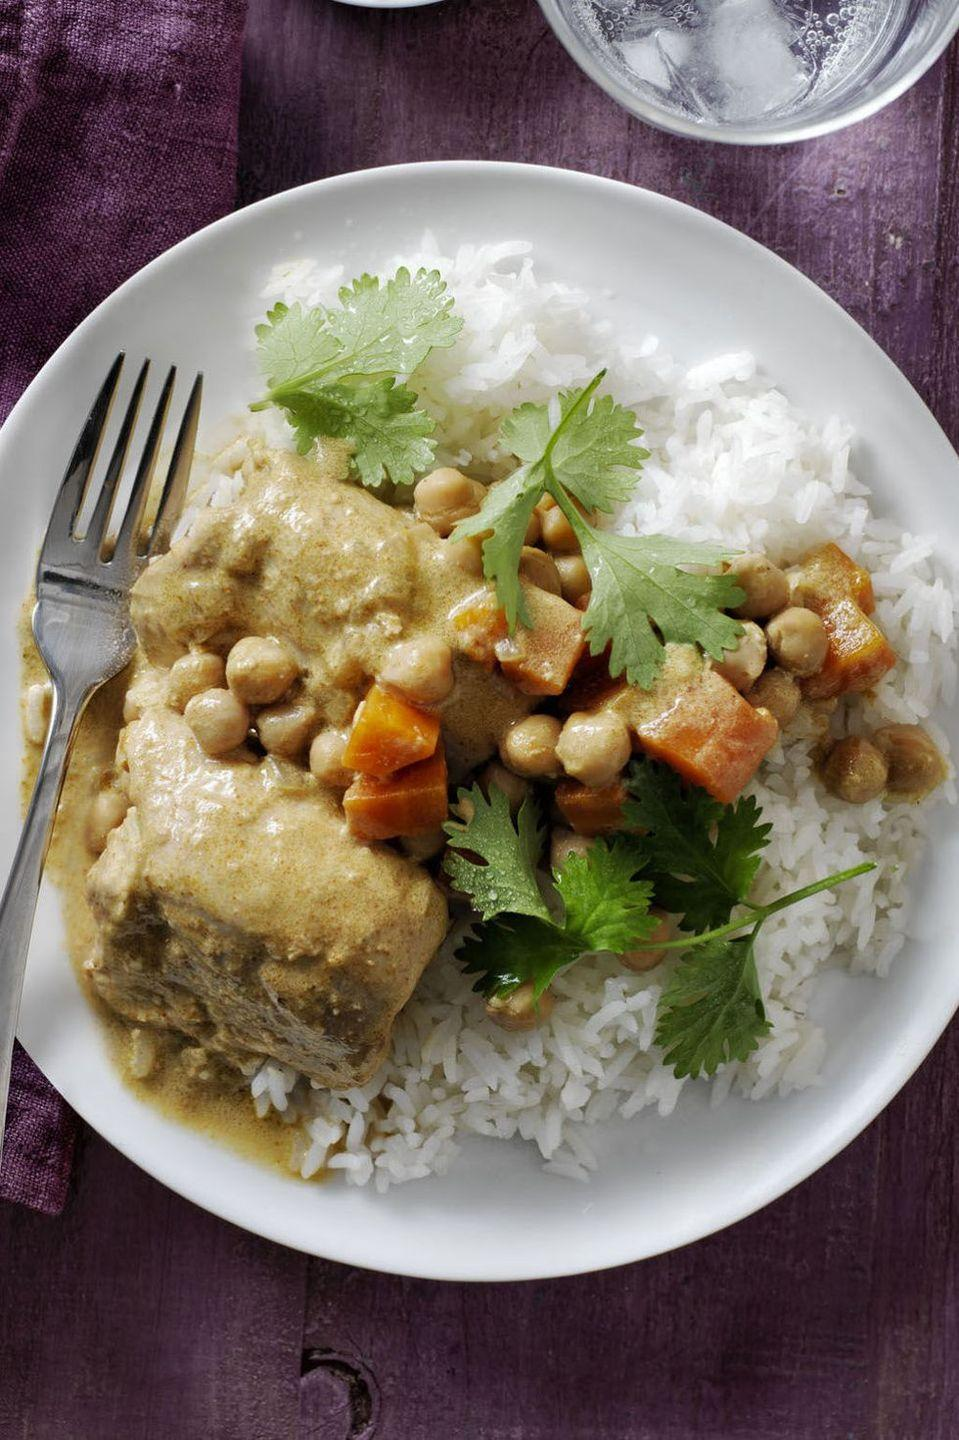 """<p>This recipe combines spicy and sweet in the most delightful way. This is thanks to the blend of cayenne pepper, curry, and coconut milk. One tip: If you buy coconut milk in a can, try to get a brand that doesn't use preservatives.</p><p><em><a href=""""https://www.womansday.com/food-recipes/food-drinks/recipes/a57921/coconut-curry-chicken-chickpeas-recipe/"""" rel=""""nofollow noopener"""" target=""""_blank"""" data-ylk=""""slk:Get the recipe from Woman's Day »"""" class=""""link rapid-noclick-resp"""">Get the recipe from Woman's Day »</a></em></p>"""